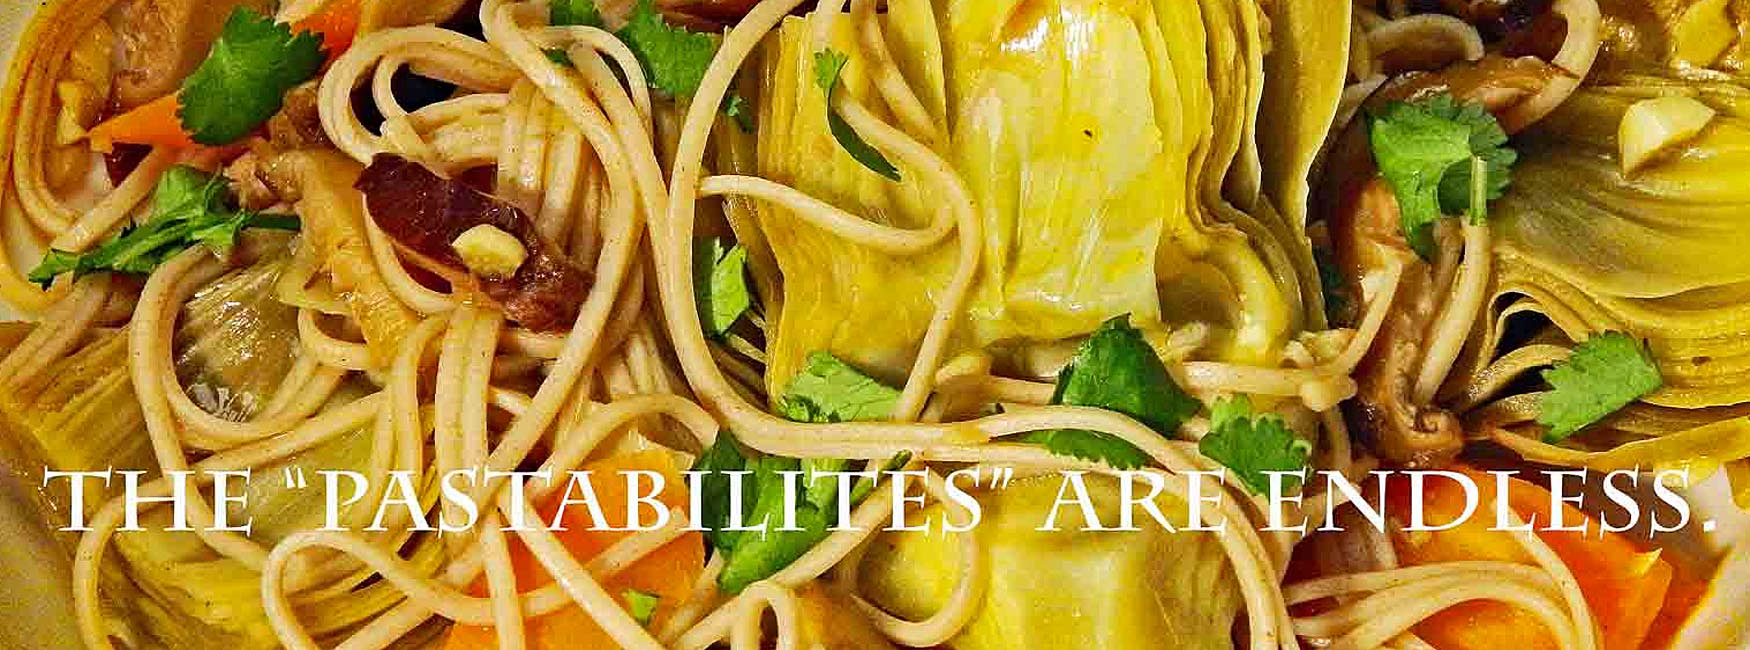 Pasta with veggies make for a filling, healthy addition to your meals.